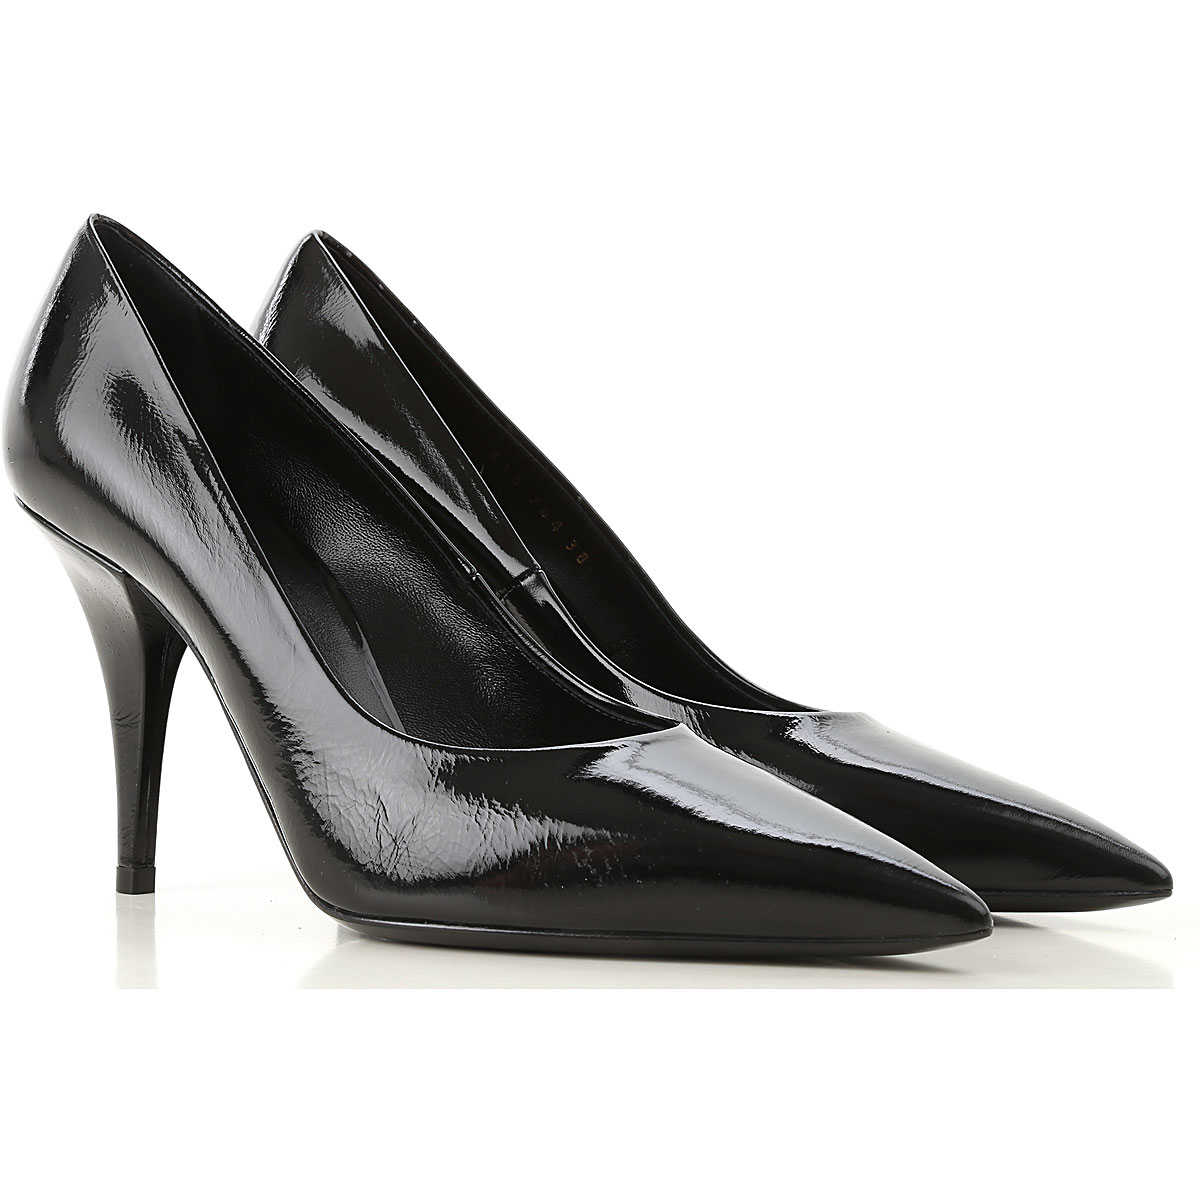 Casadei Pumps & High Heels for Women in Outlet Black USA - GOOFASH